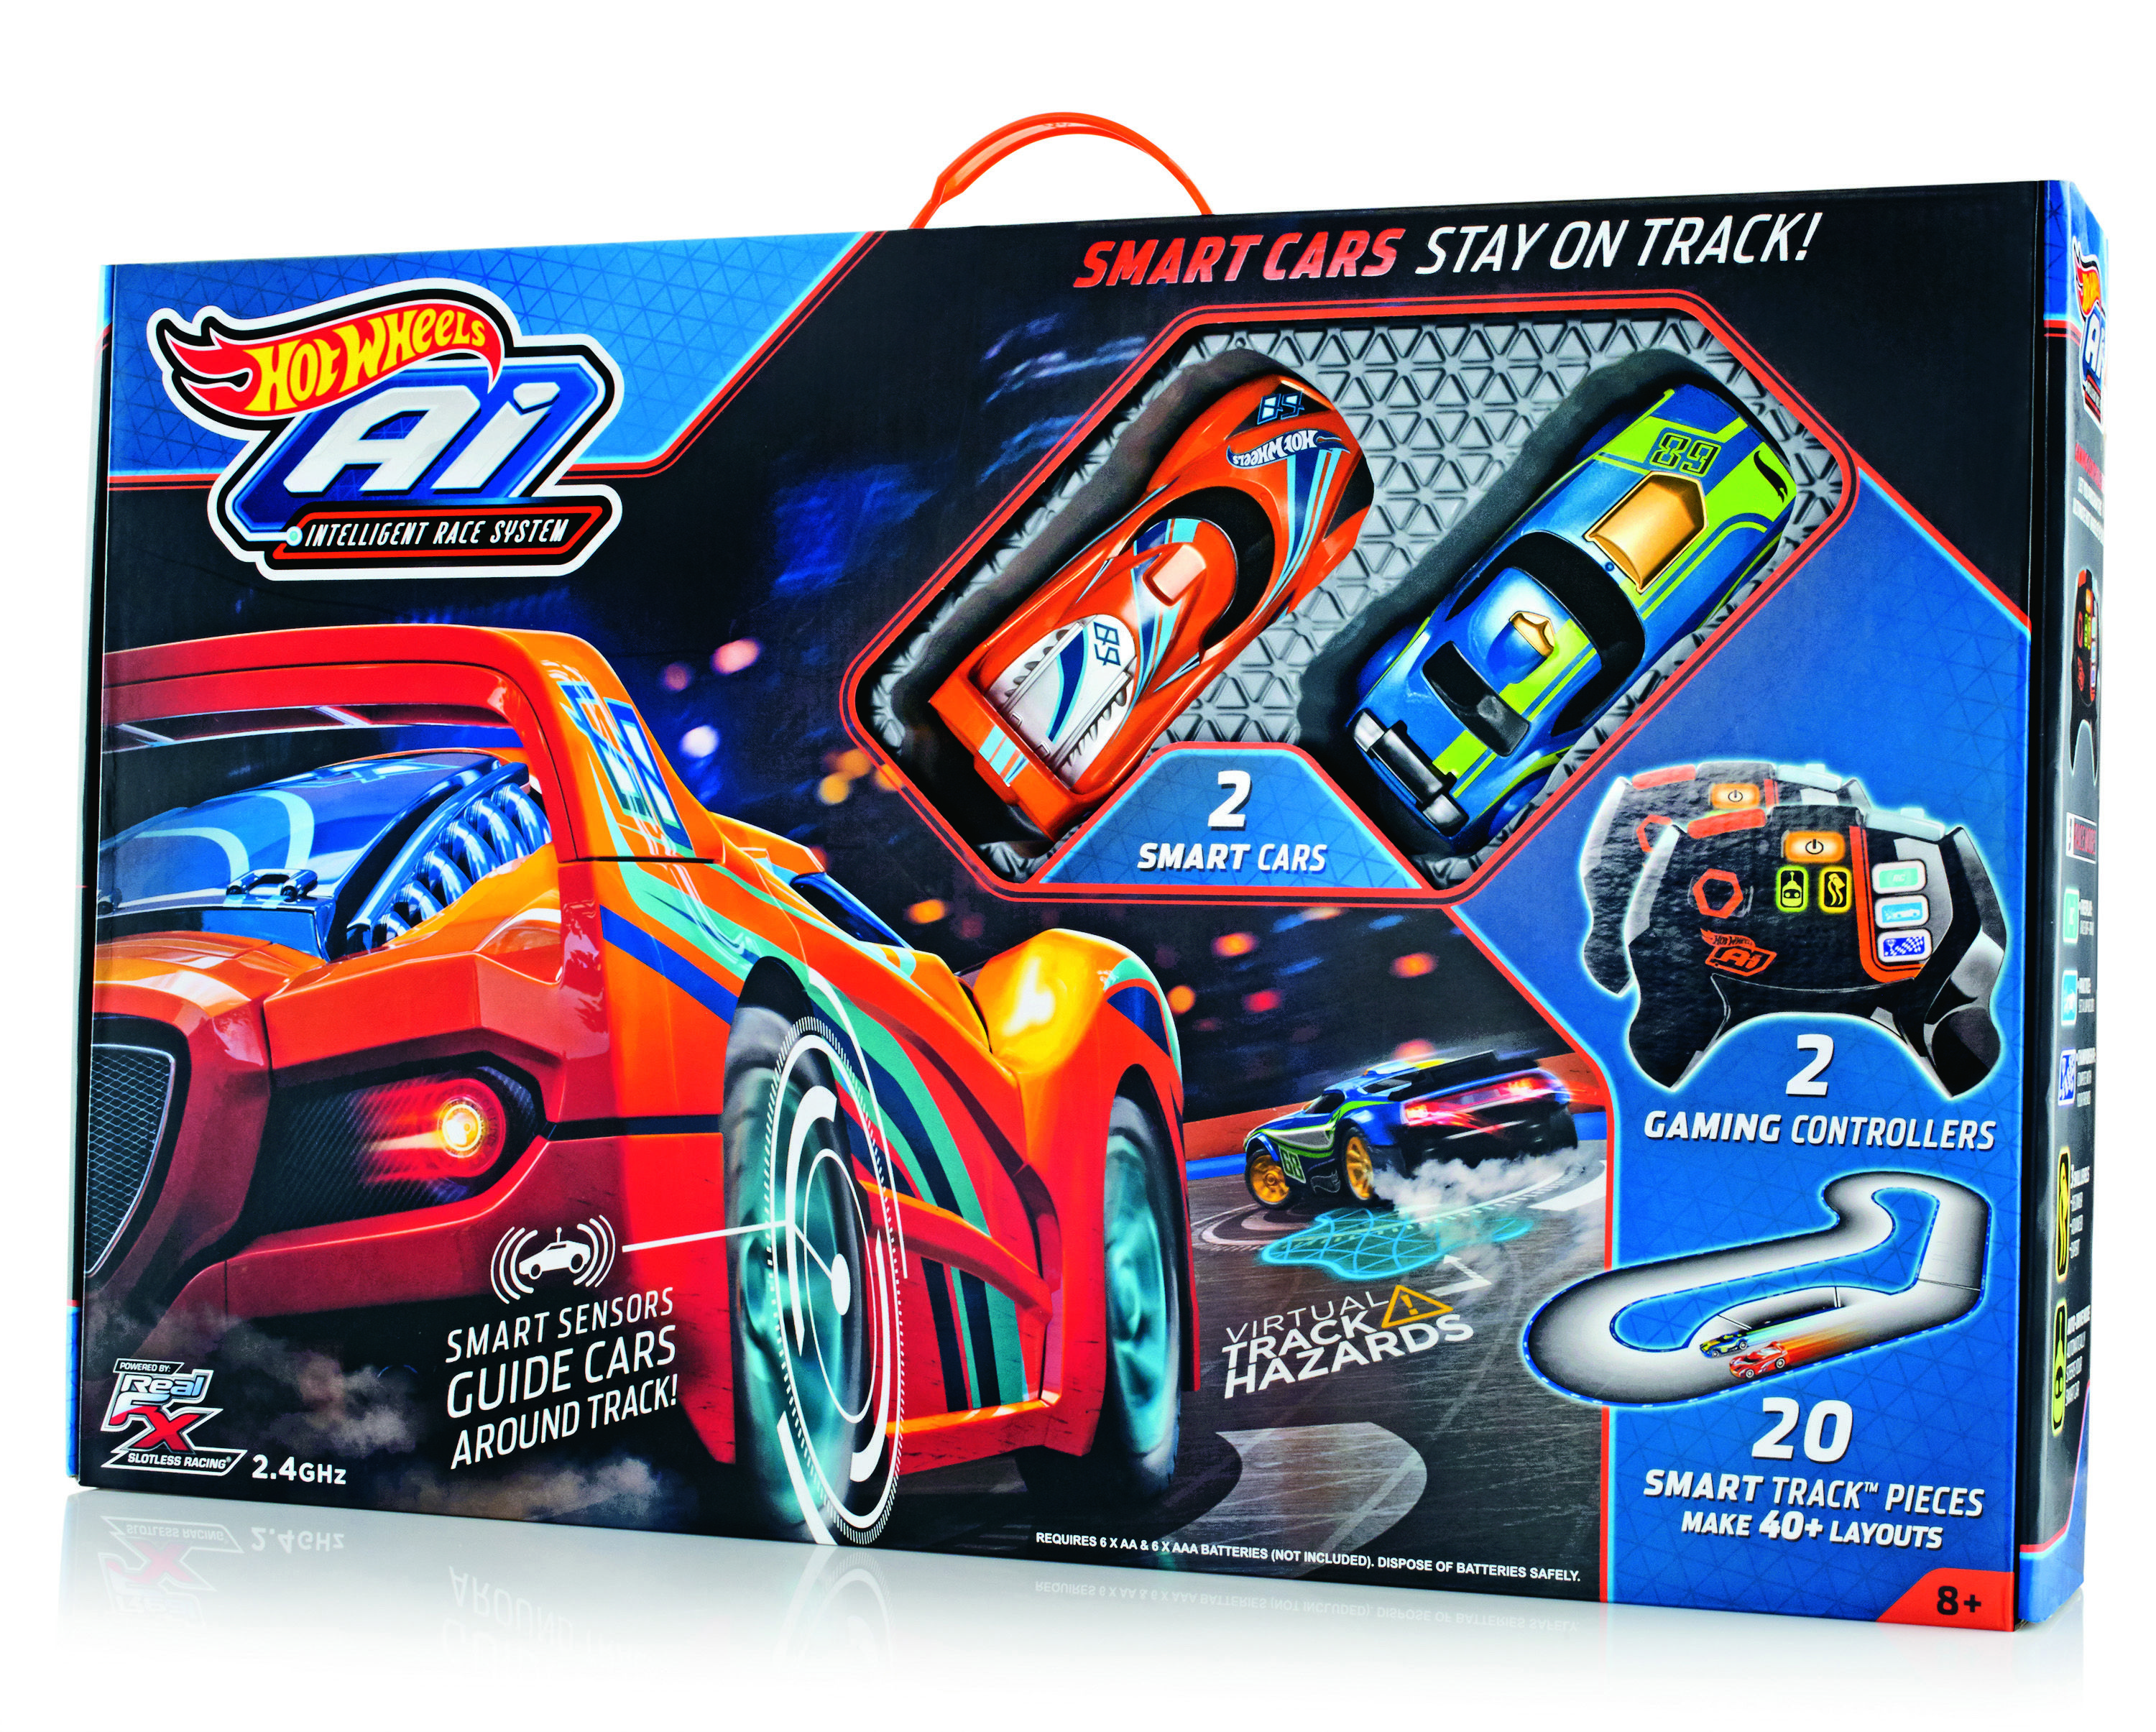 Racing fans ready to put your skills to the test with Hot Wheels